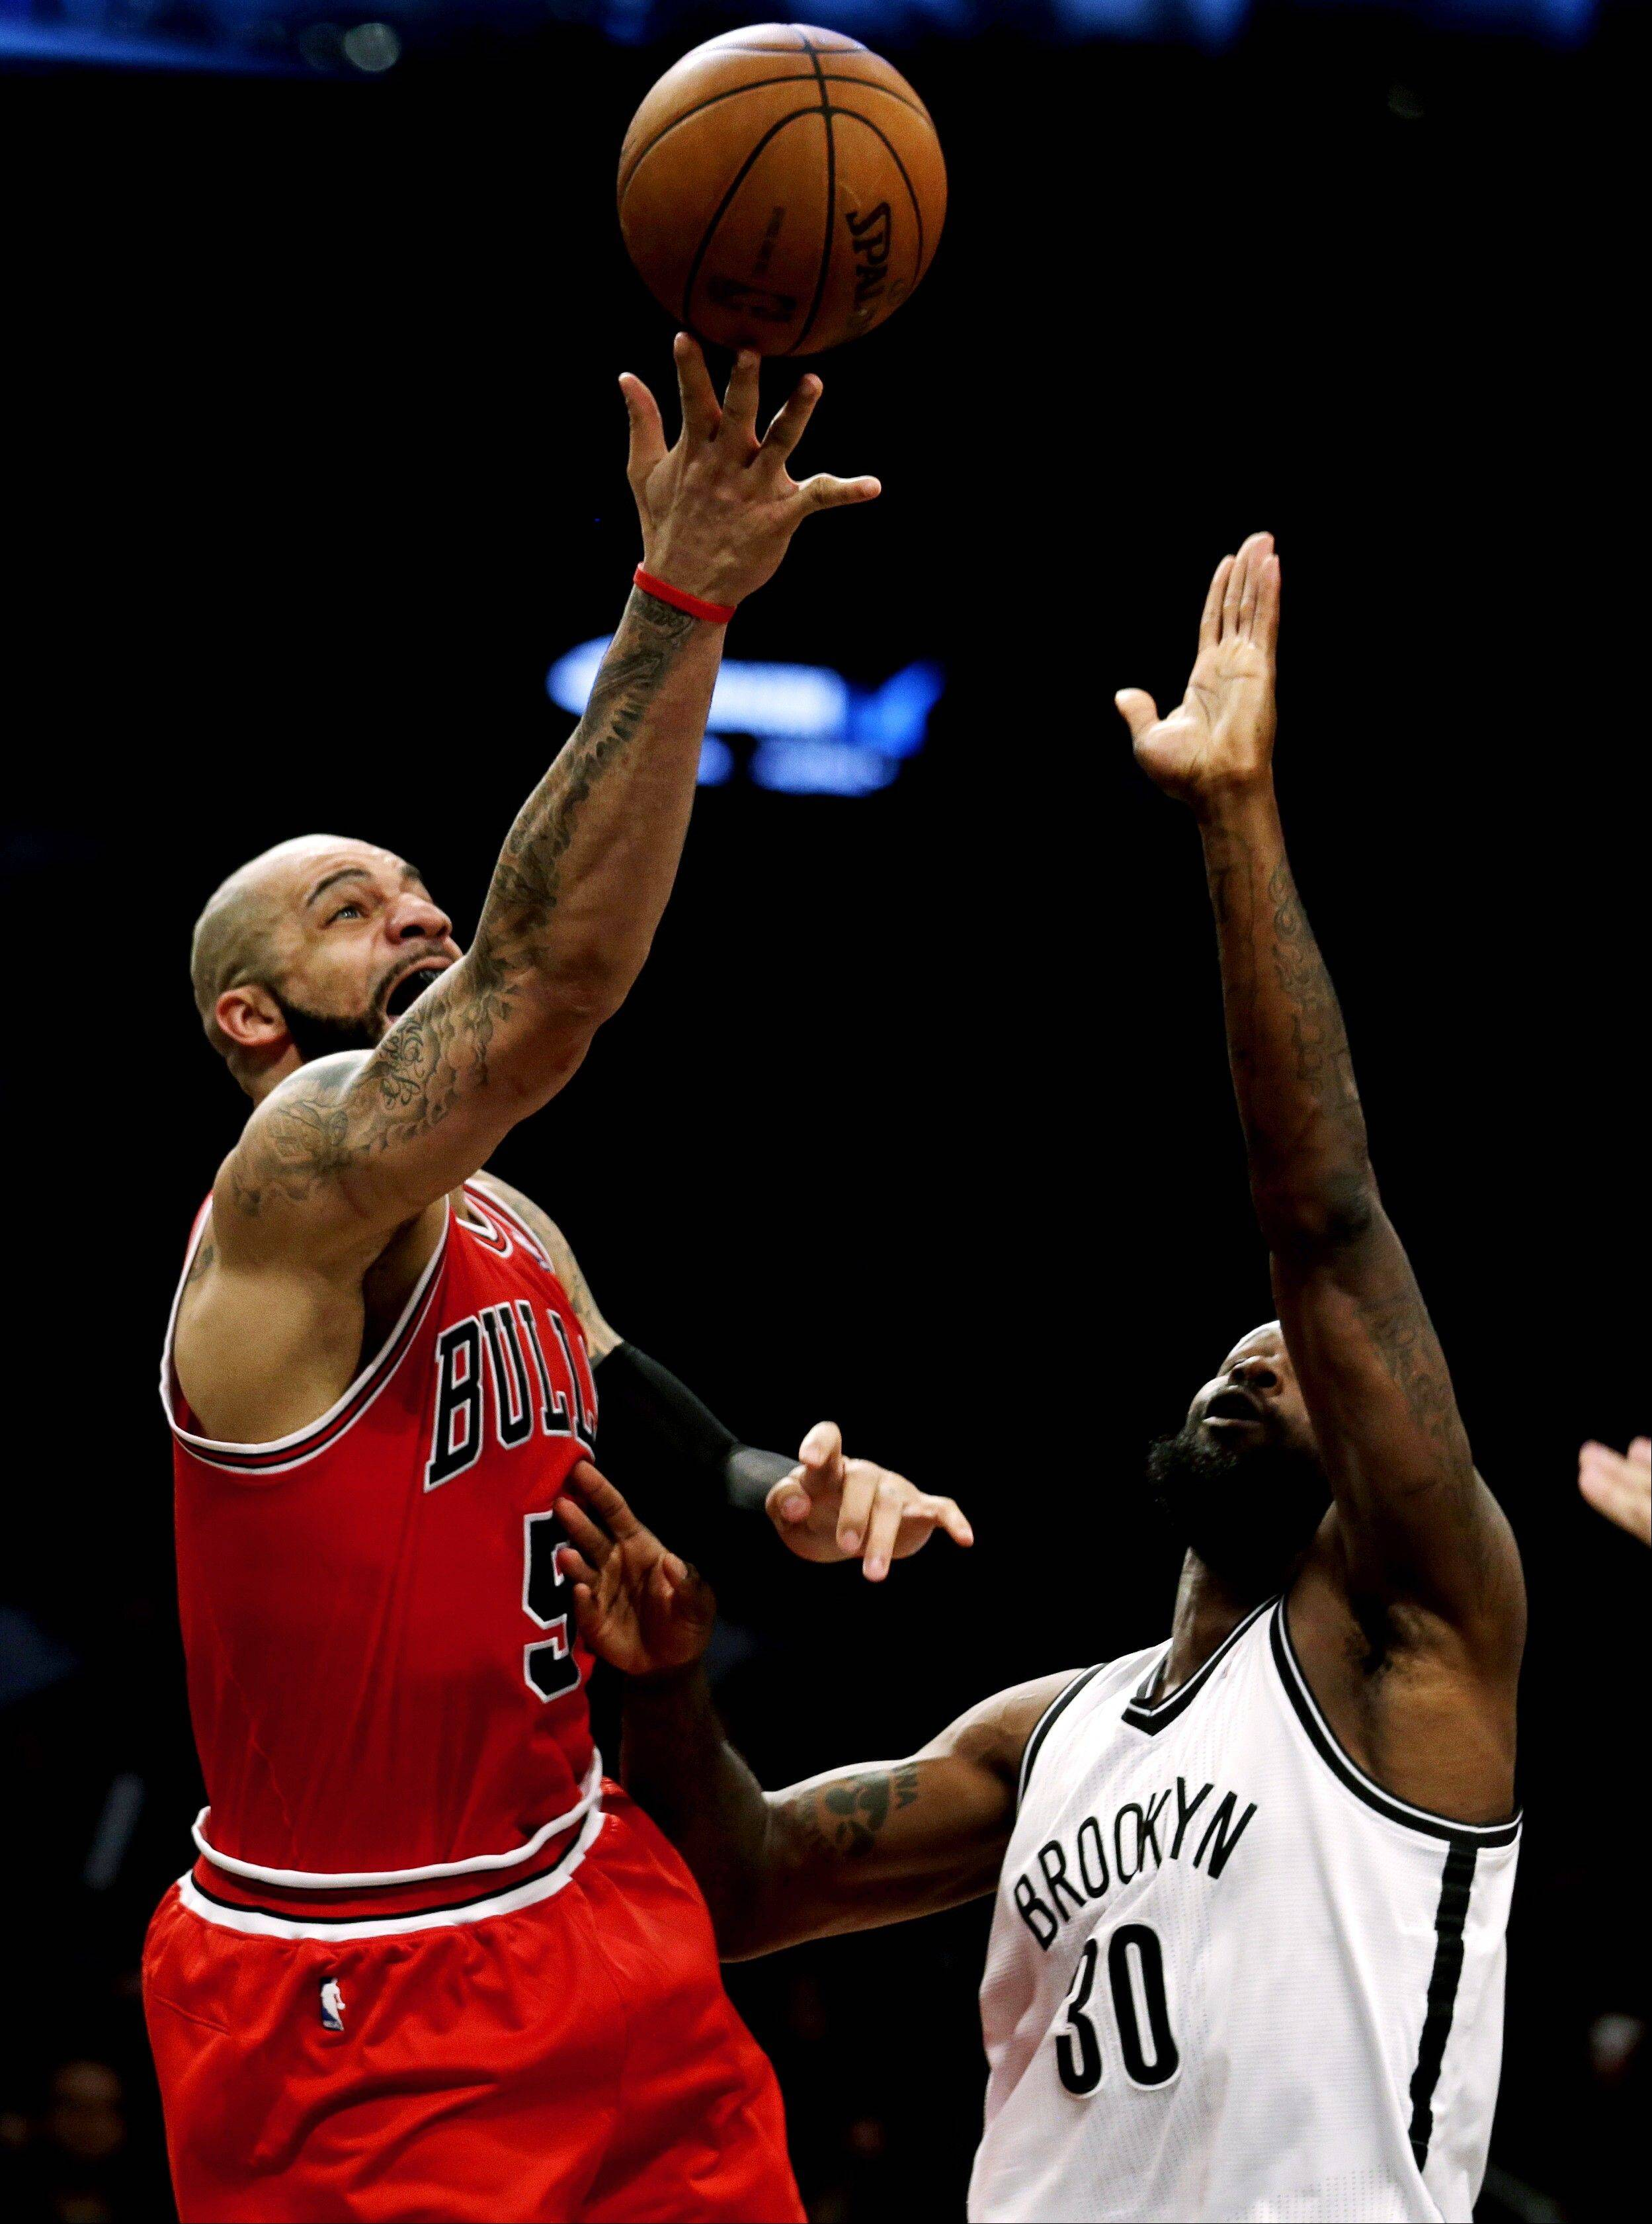 Bulls forward Carlos Boozer, left, shoots against Brooklyn Nets' Reggie Evans during the second half in Game 7 of their first-round NBA basketball playoff series in New York, Saturday, May 4, 2013.